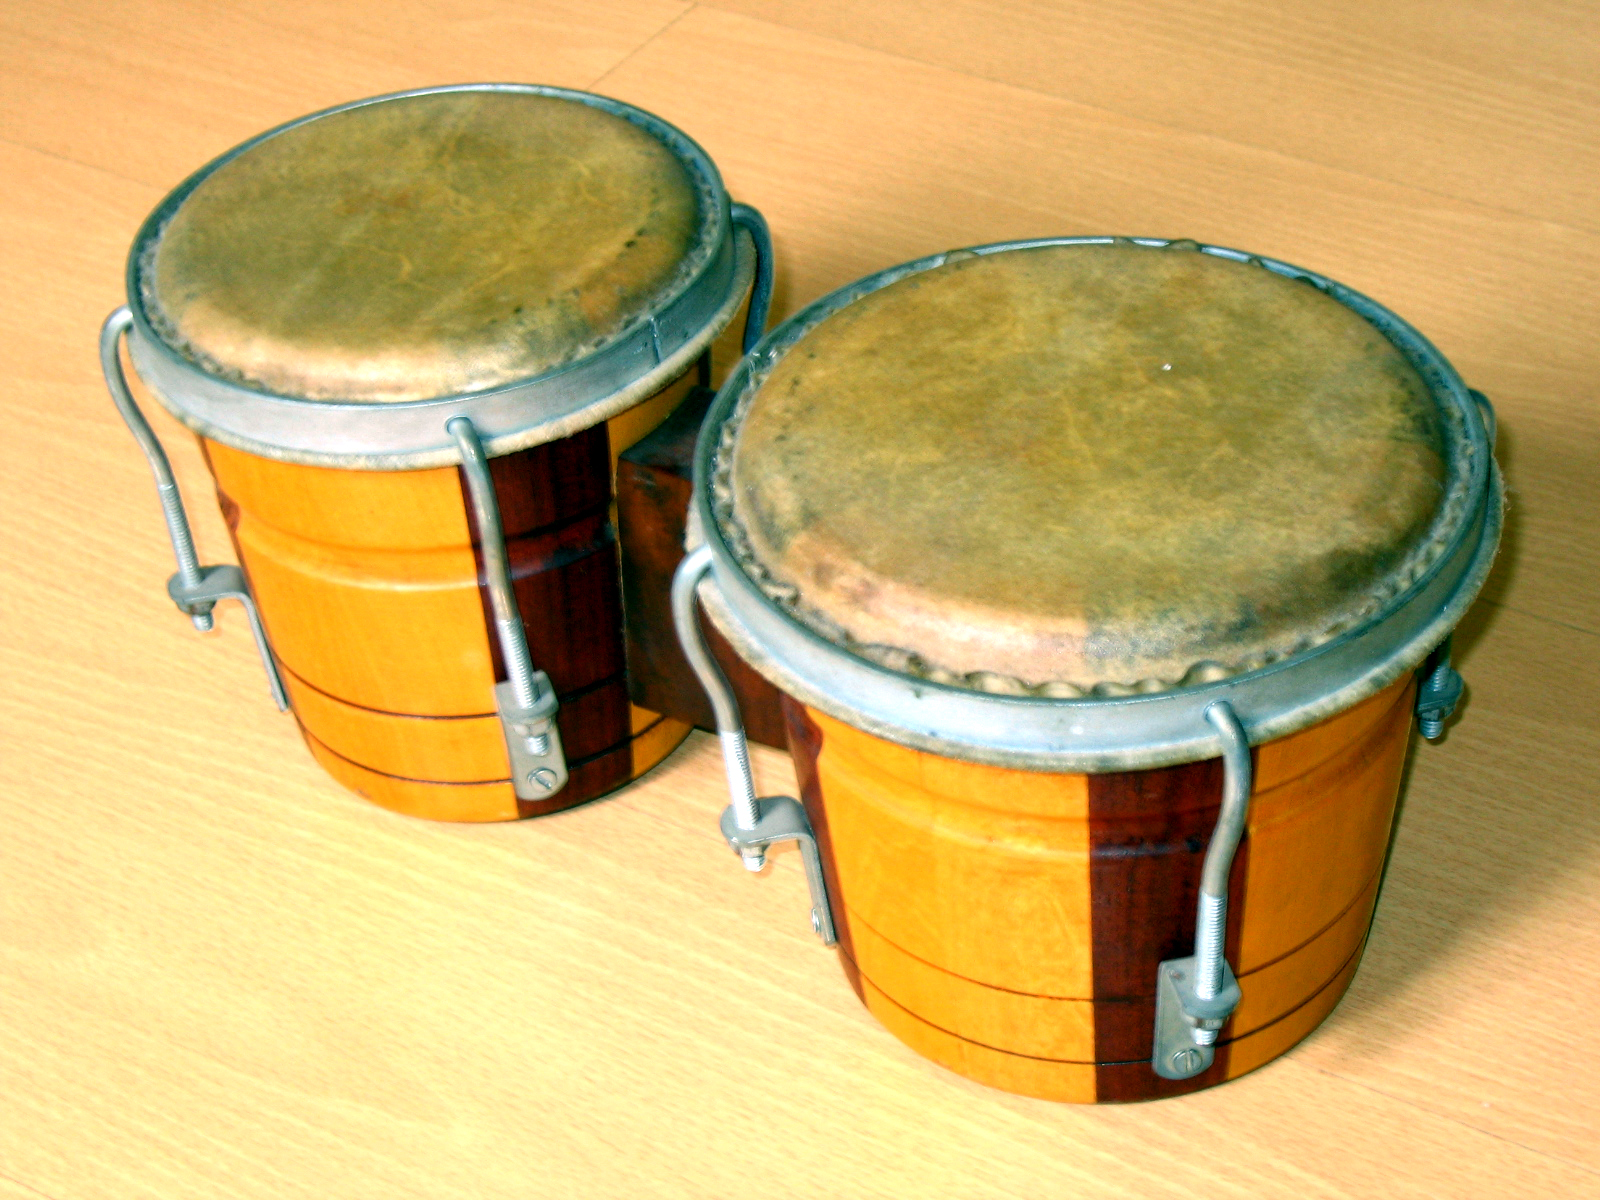 bongo drum wikipedia. Black Bedroom Furniture Sets. Home Design Ideas